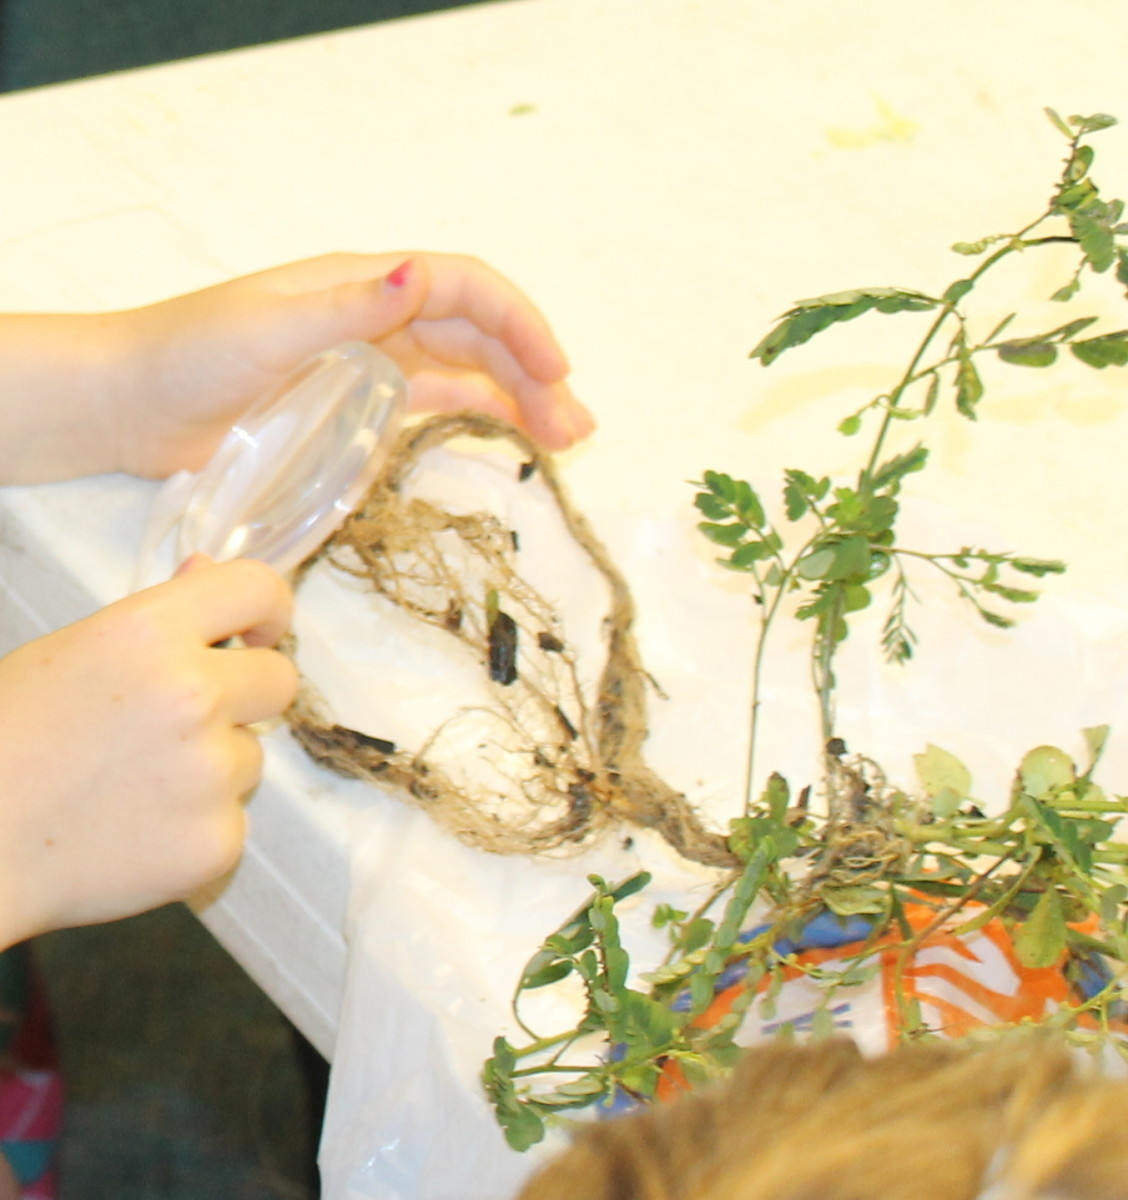 Observing various types of roots